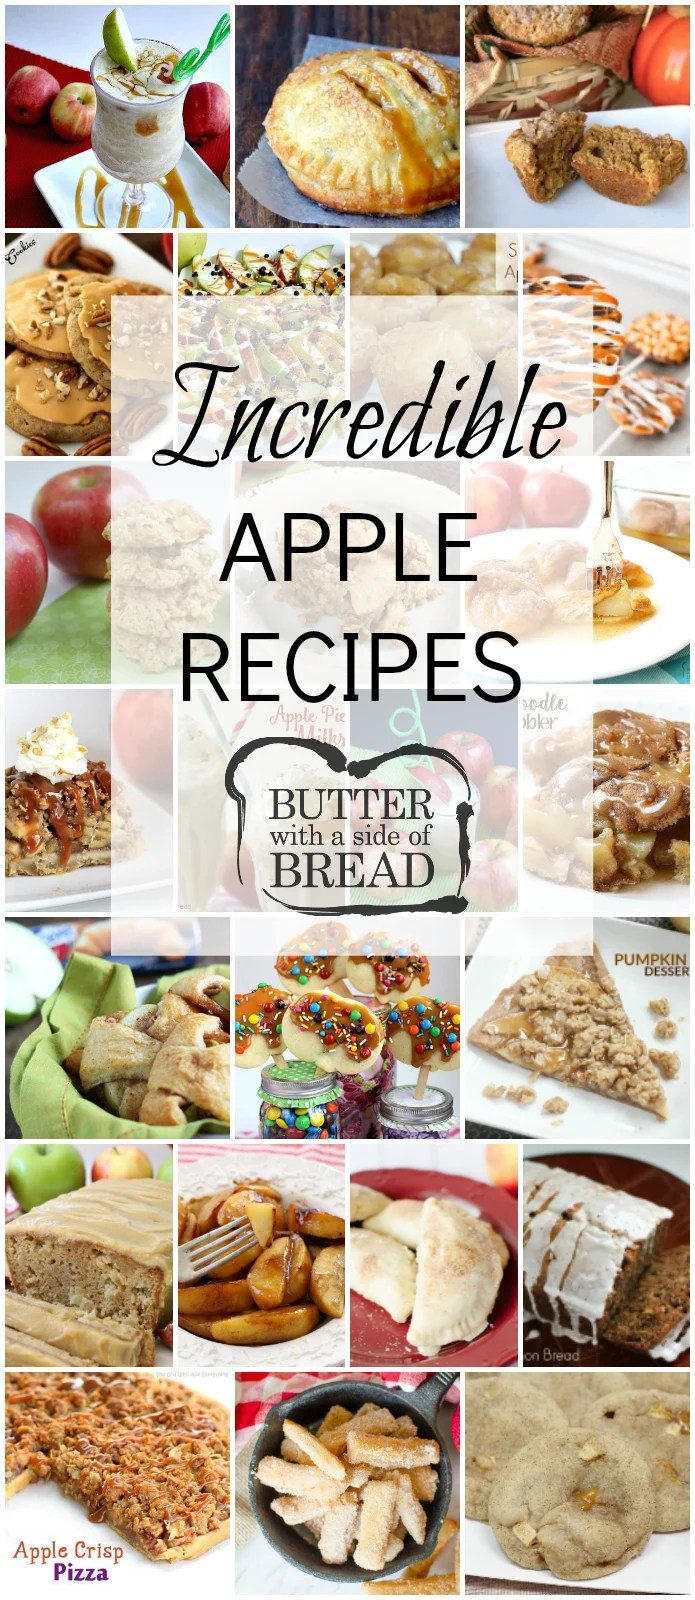 Tried & true incredible Apple Recipes that everyone enjoys! Featuring apple desserts, apple snacks, cookies, breads and more. Easy apple recipe for fall baking or any time of the year. #apples #recipe #applerecipes #baking #Fall #dessert #food #recipes from BUTTER WITH A SIDE OF BREAD